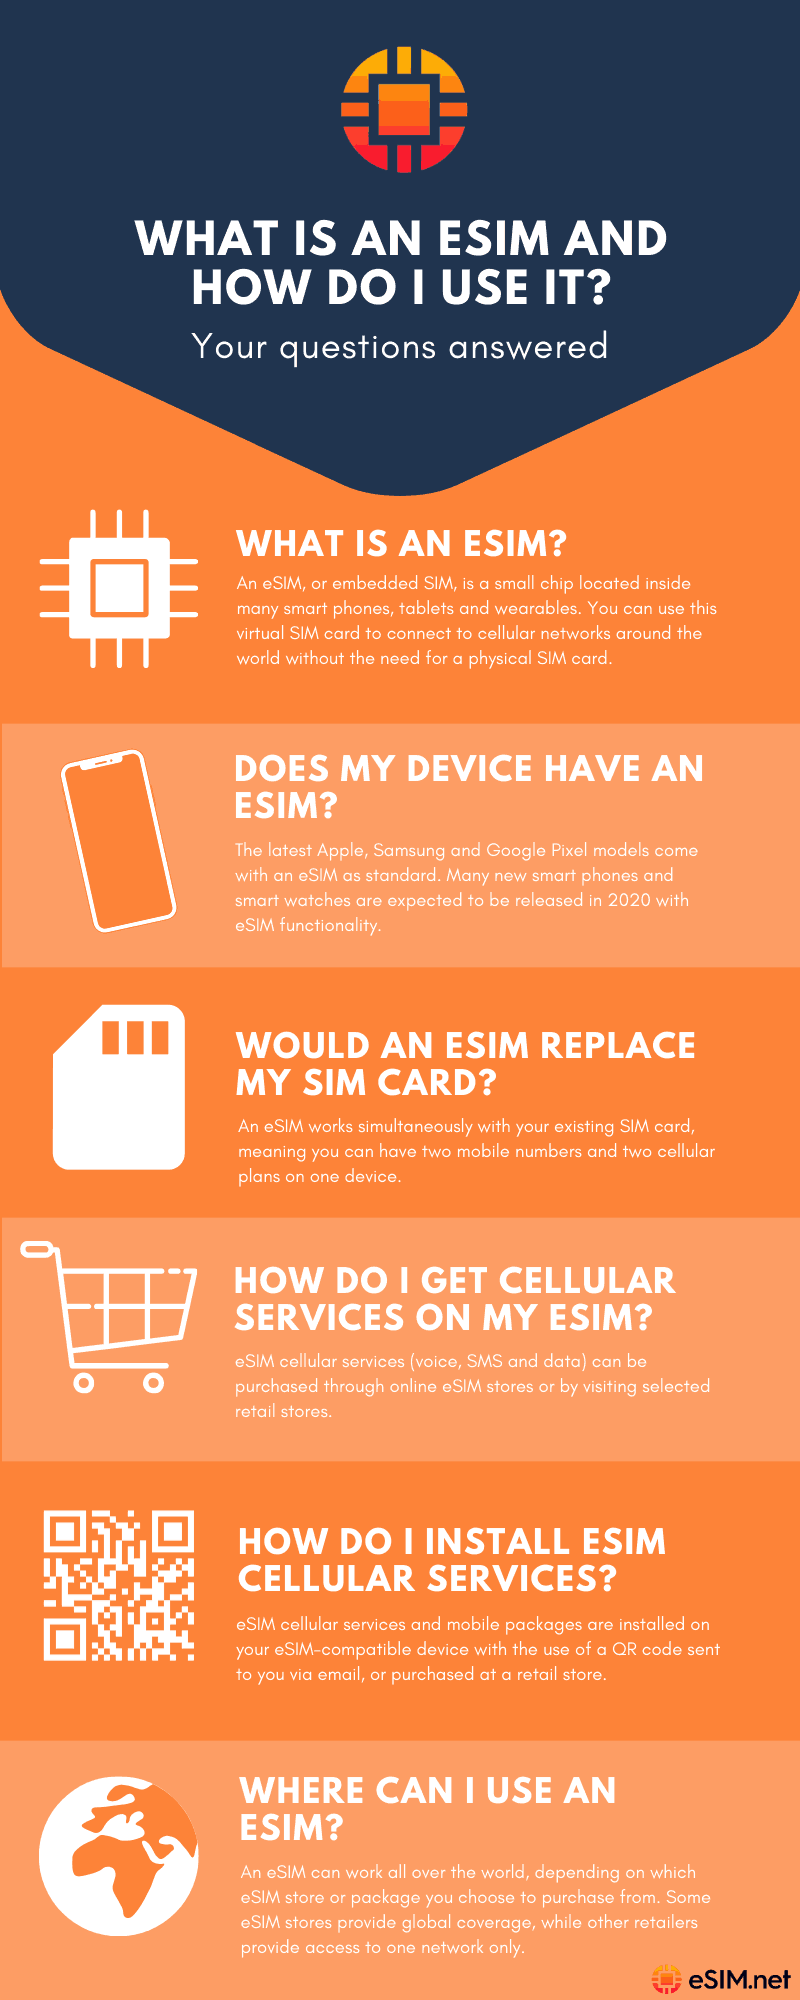 What is an eSIM and how do you use it?